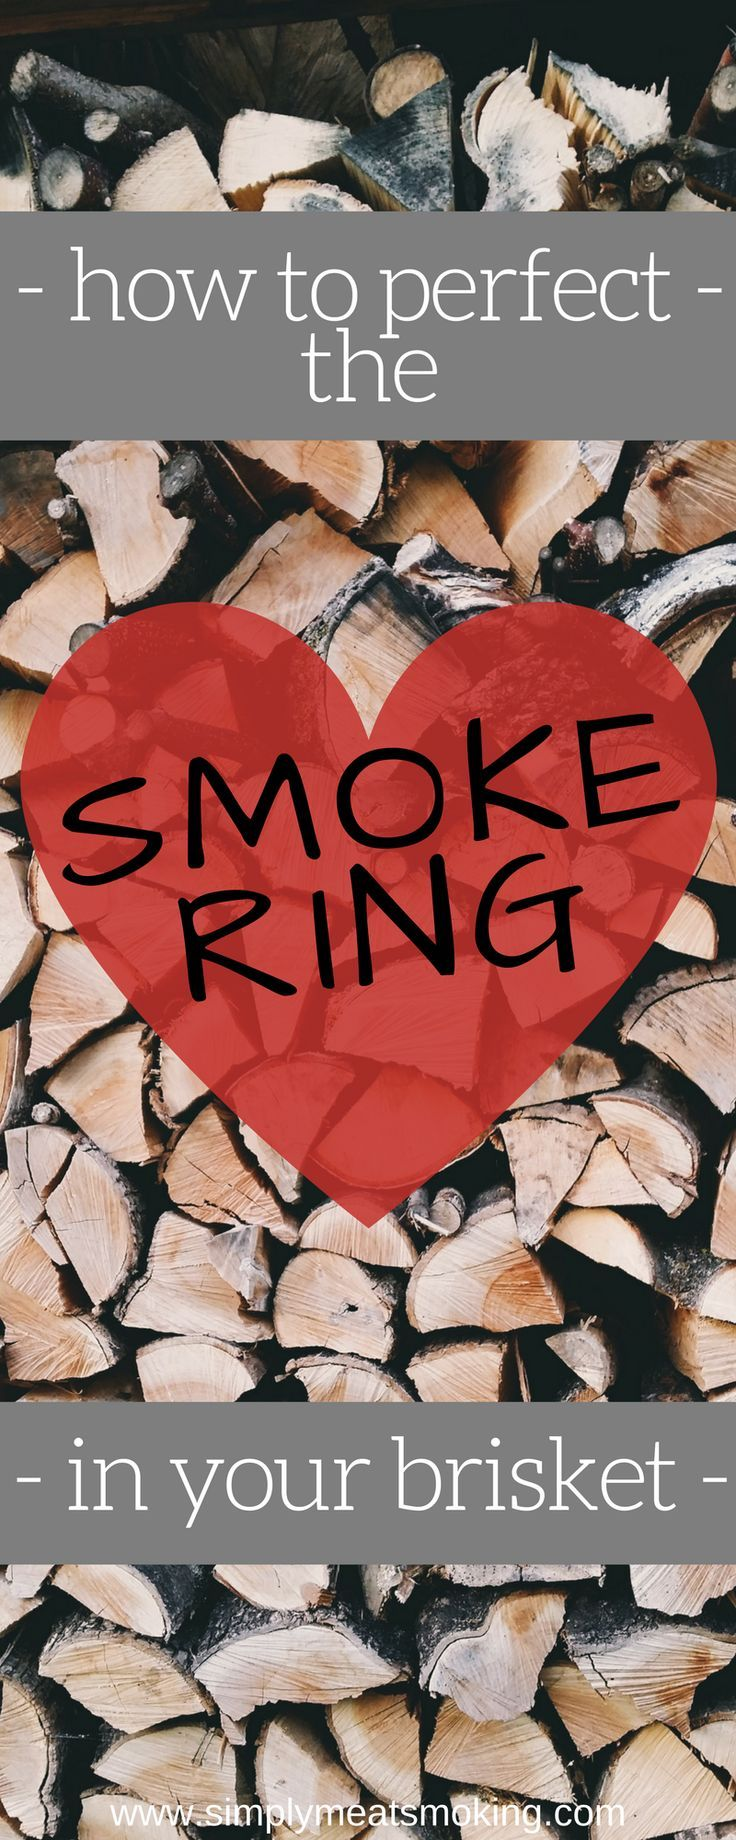 A smoke ring is what many of us strive for. But what is it and how do you get one?? BBQ Recipes | Gas Barbecue Recipes | Gas Smoker Recipes | Gas Grill Recipes | Best Gas Grill Recipes | Best Gas Smoker Recipes | Best Gas BBQ Recipes | Best Gas Barbecue Recipes | Best BBQ Food | BBQ Inspiration | Barbecue Inspiration | Grilling Inspiration | How To | Inspiration | Blogs | Food blogs | Brisket | | #bbq #brosket #barbecue #grilling #grill #bbqlife